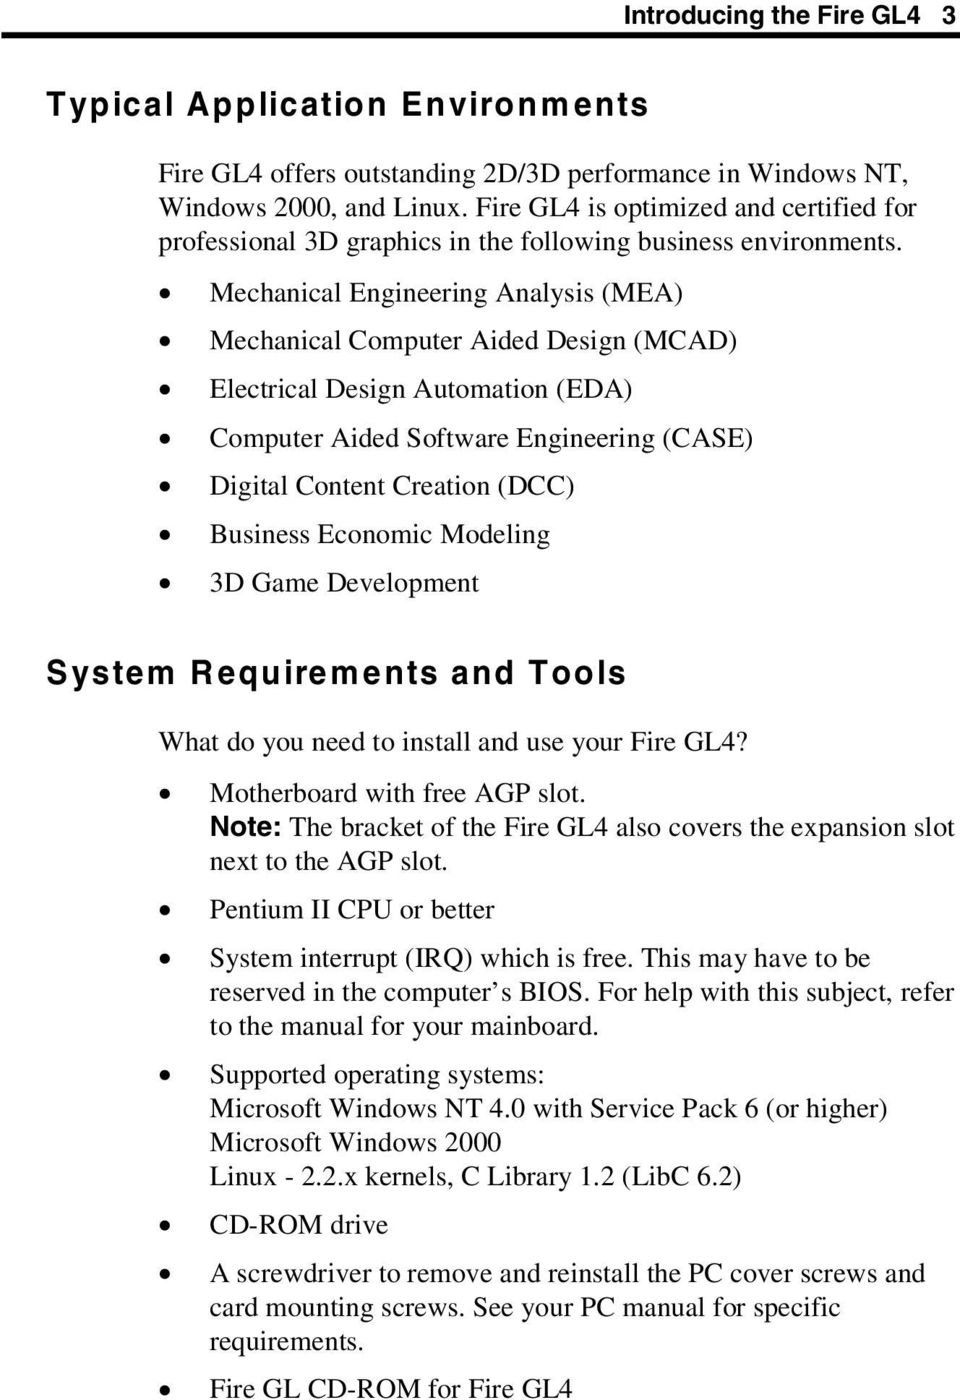 Mechanical Engineering Analysis (MEA) Mechanical Computer Aided Design (MCAD) Electrical Design Automation (EDA) Computer Aided Software Engineering (CASE) Digital Content Creation (DCC) Business